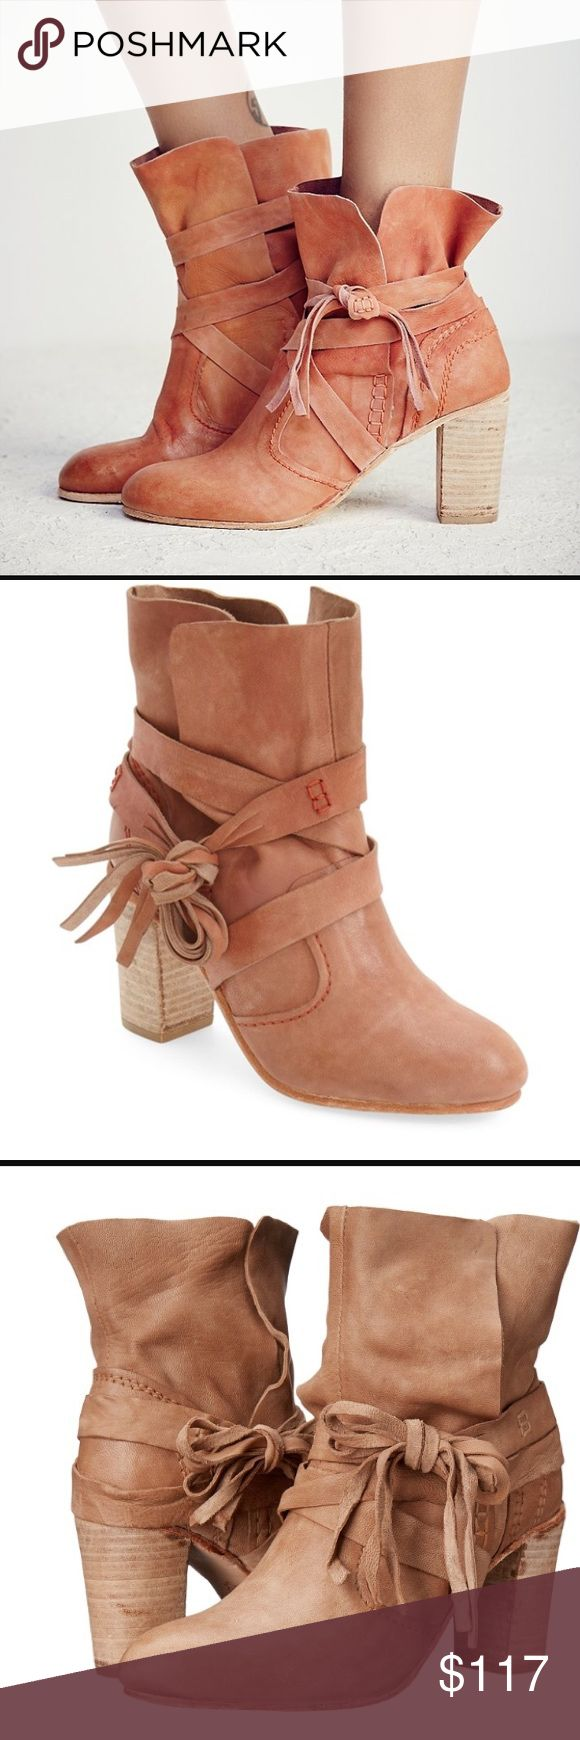 Free People seven wonders heel boots brick. Sz 8 Sold out in stores. Bought these after stopping someone on the street who was wearing them. They are ridiculous. I get so many compliments, but they run a tad small so I find I don't wear as often.:( Will trade for 8.5 as well. Like new. Bundles Free People Shoes Heeled Boots